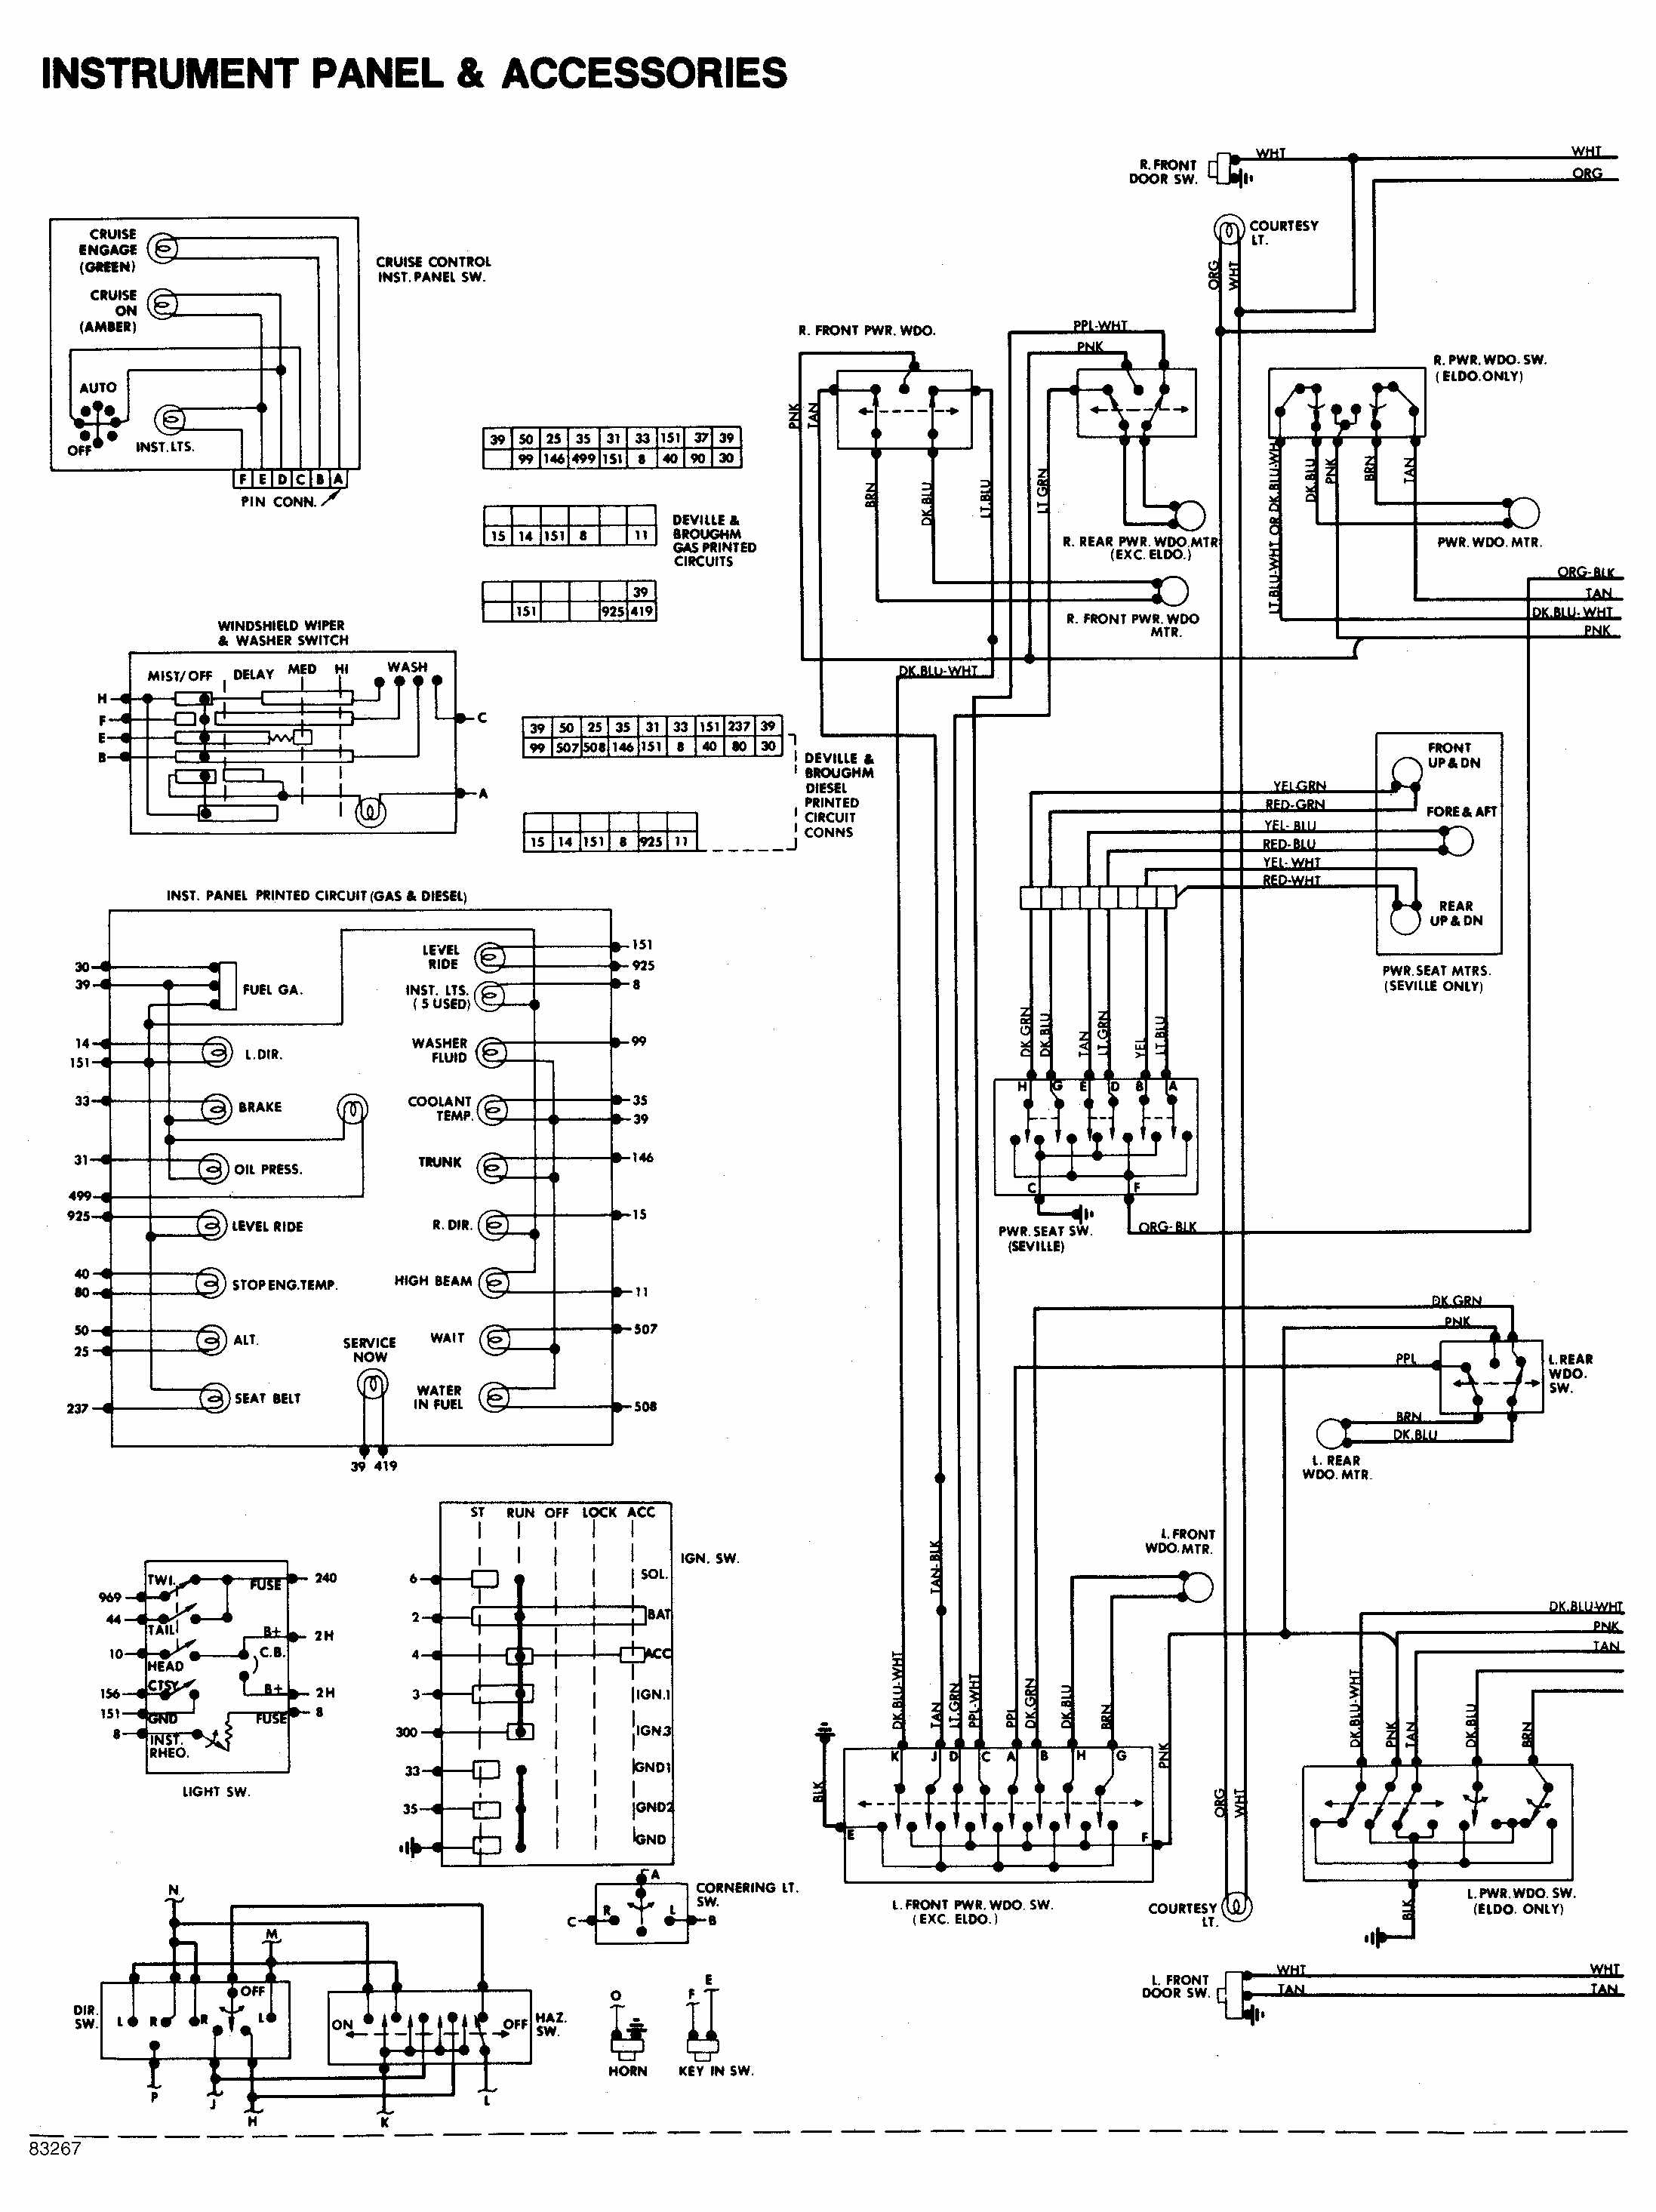 Instrument Panel And Accessories Wiring Diagram Of Cadillac Deville on 2004 honda civic brake light fuse